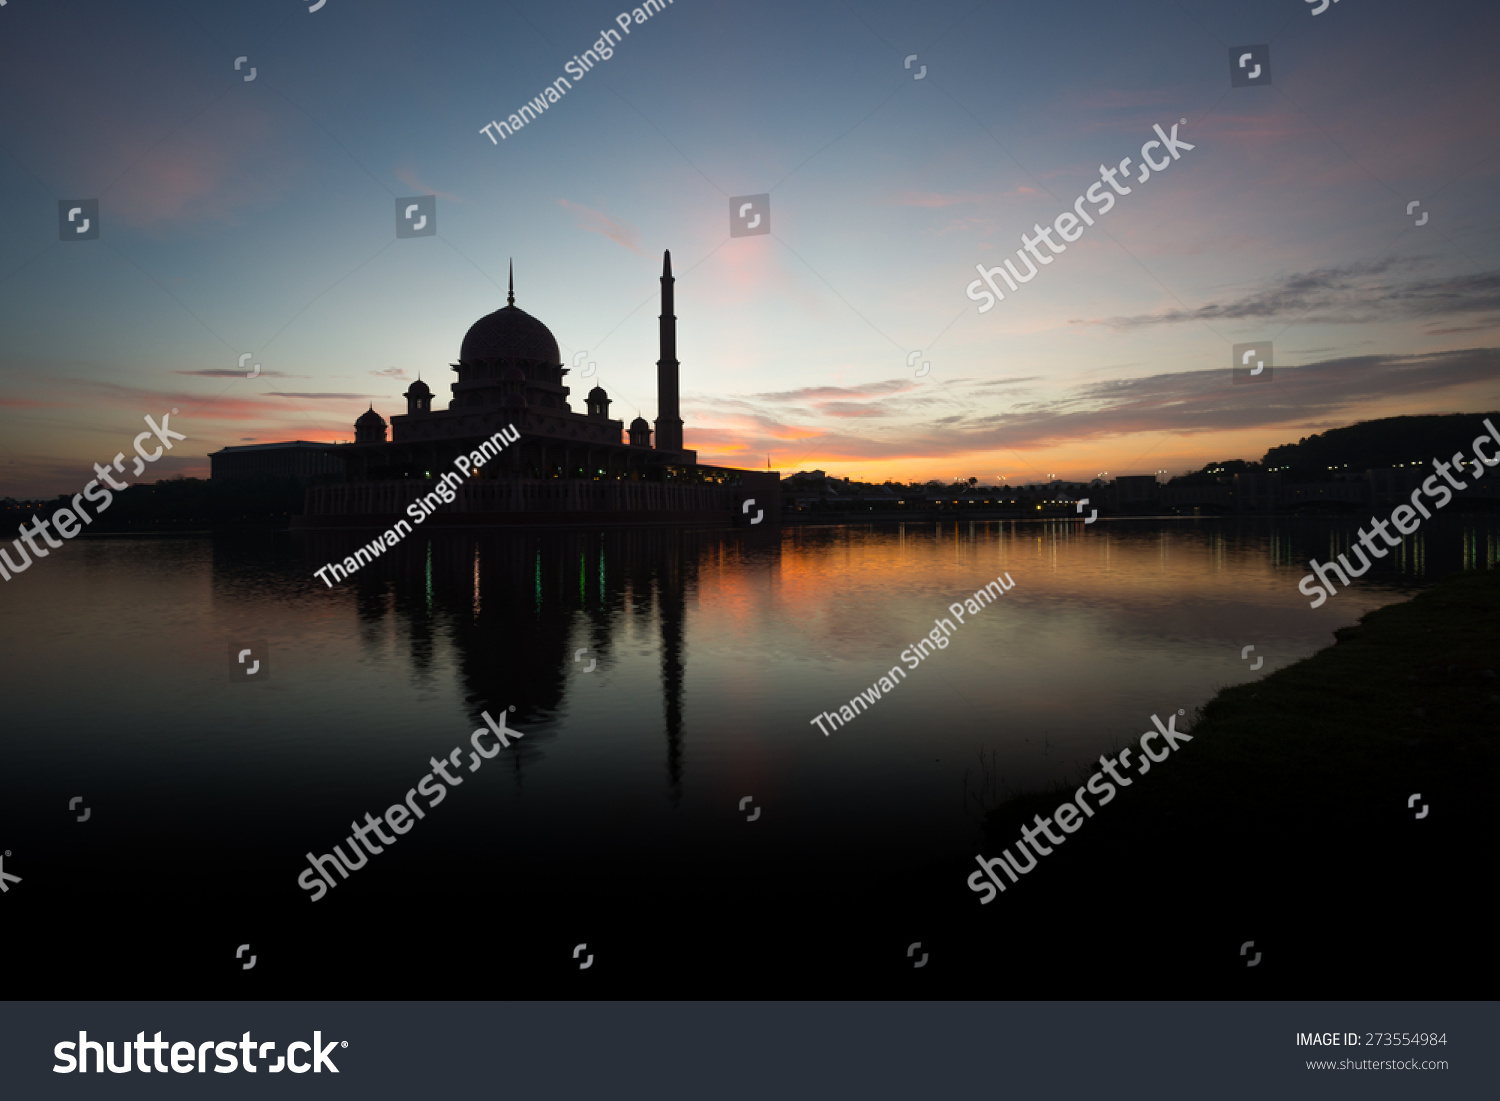 A silhouette of a mosque / The Putra Mosque silhouette  / A mosque at dawn / Sunrise clouds above mosque #273554984